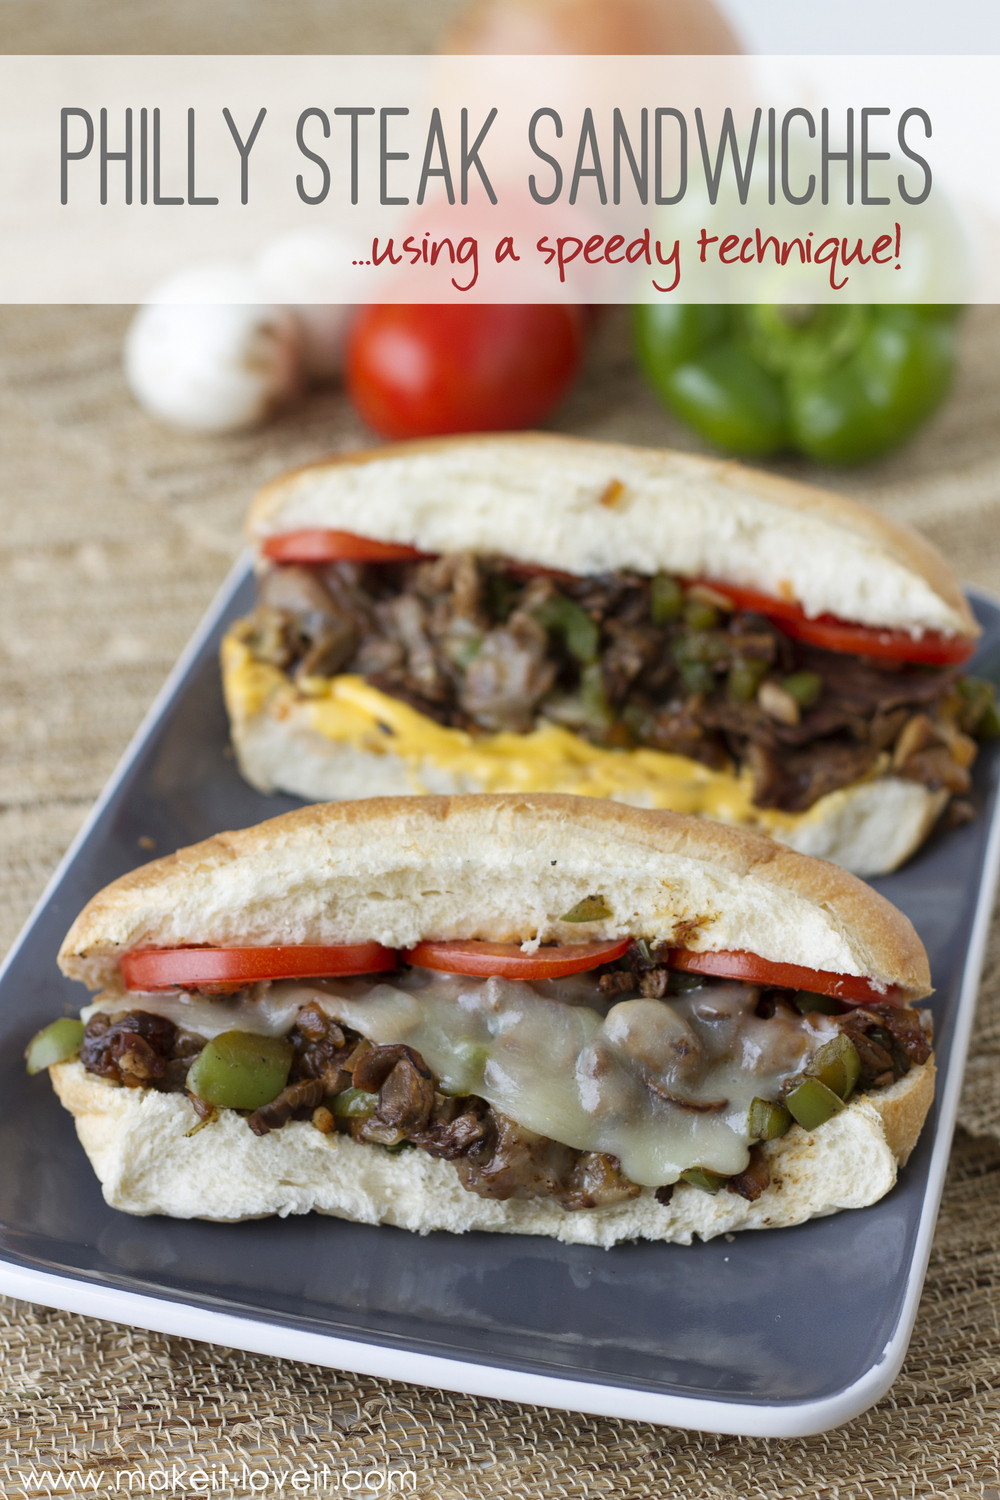 Philly Steak Sandwiches…using a speedy kitchen technique!